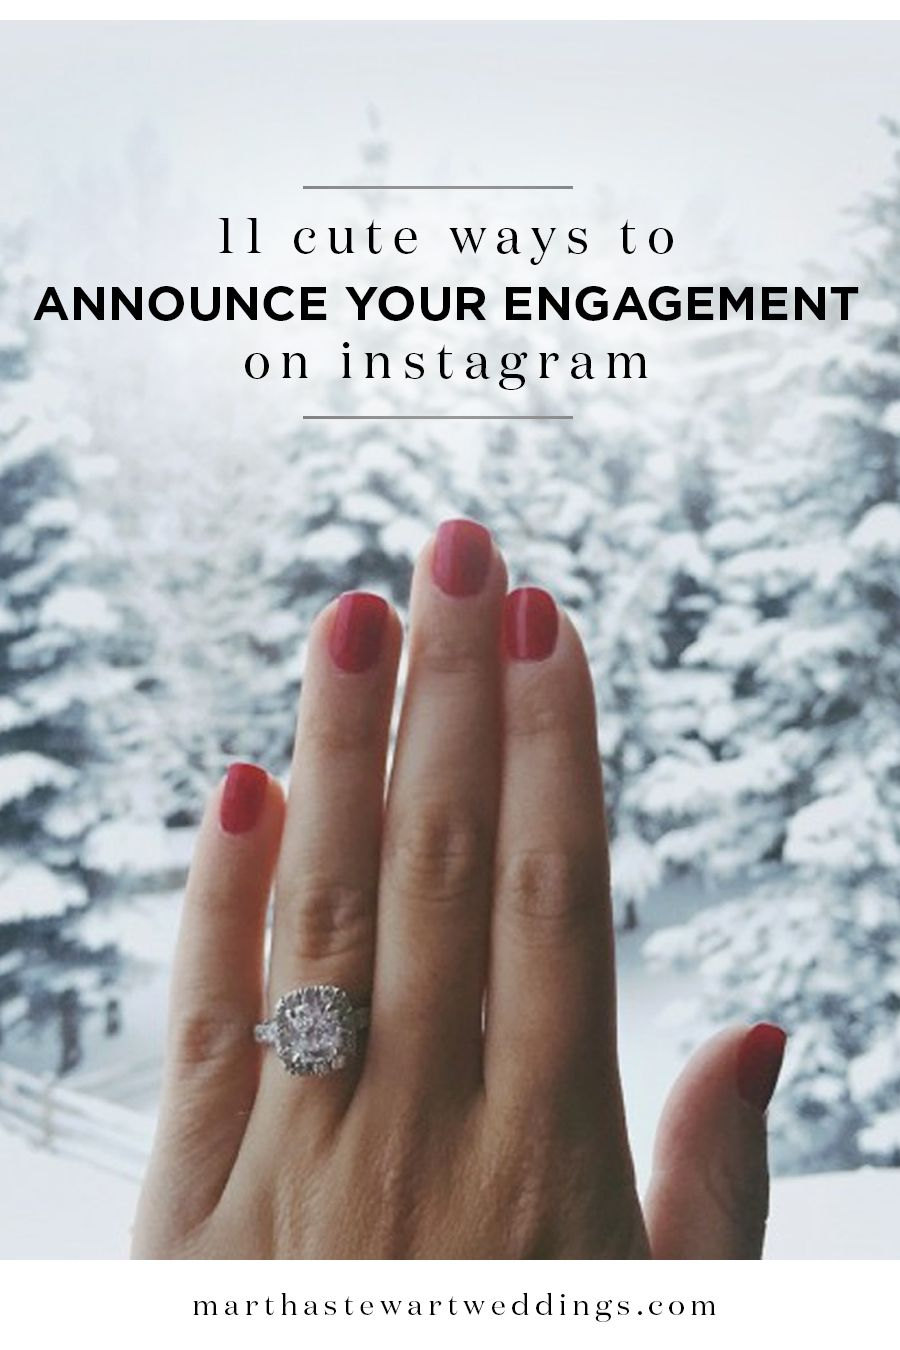 ce9210179e99ad 11 Cute Ways to Announce Your Engagement on Instagram